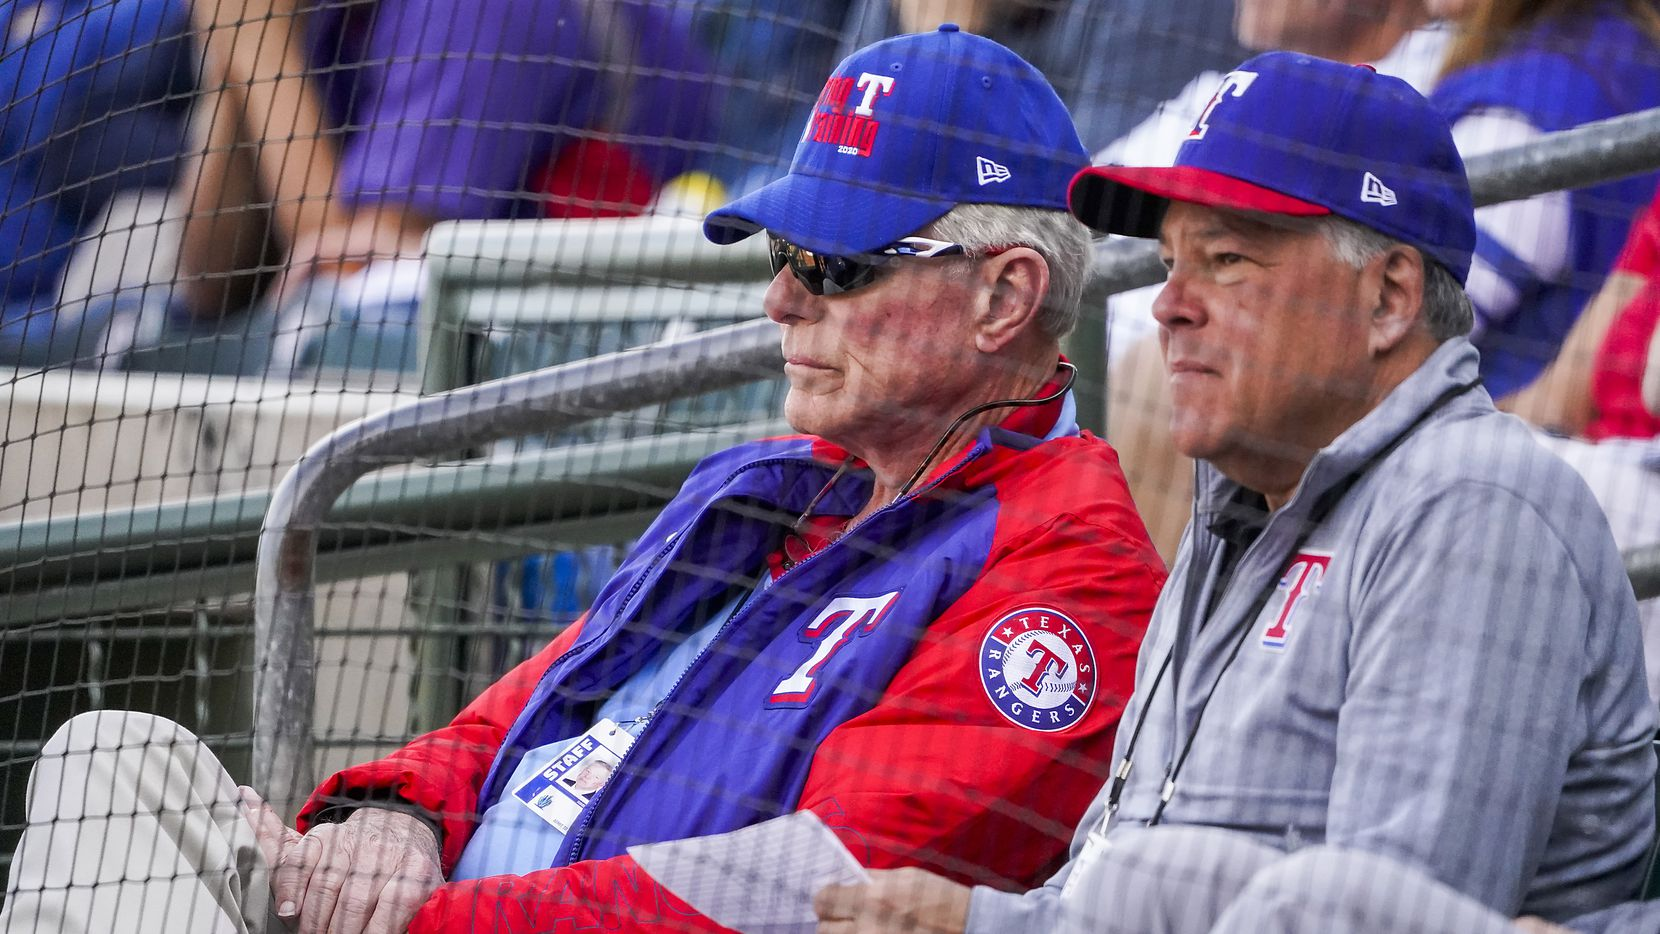 Texas Rangers co-chairman and managing partner Ray C. Davis (left) and chairman, ownership committee and chief operating officer Neil Leibman watch during the third inning of a spring training game against the Chicago Cubs at Surprise Stadium on Thursday, Feb. 27, 2020, in Surprise, Ariz.